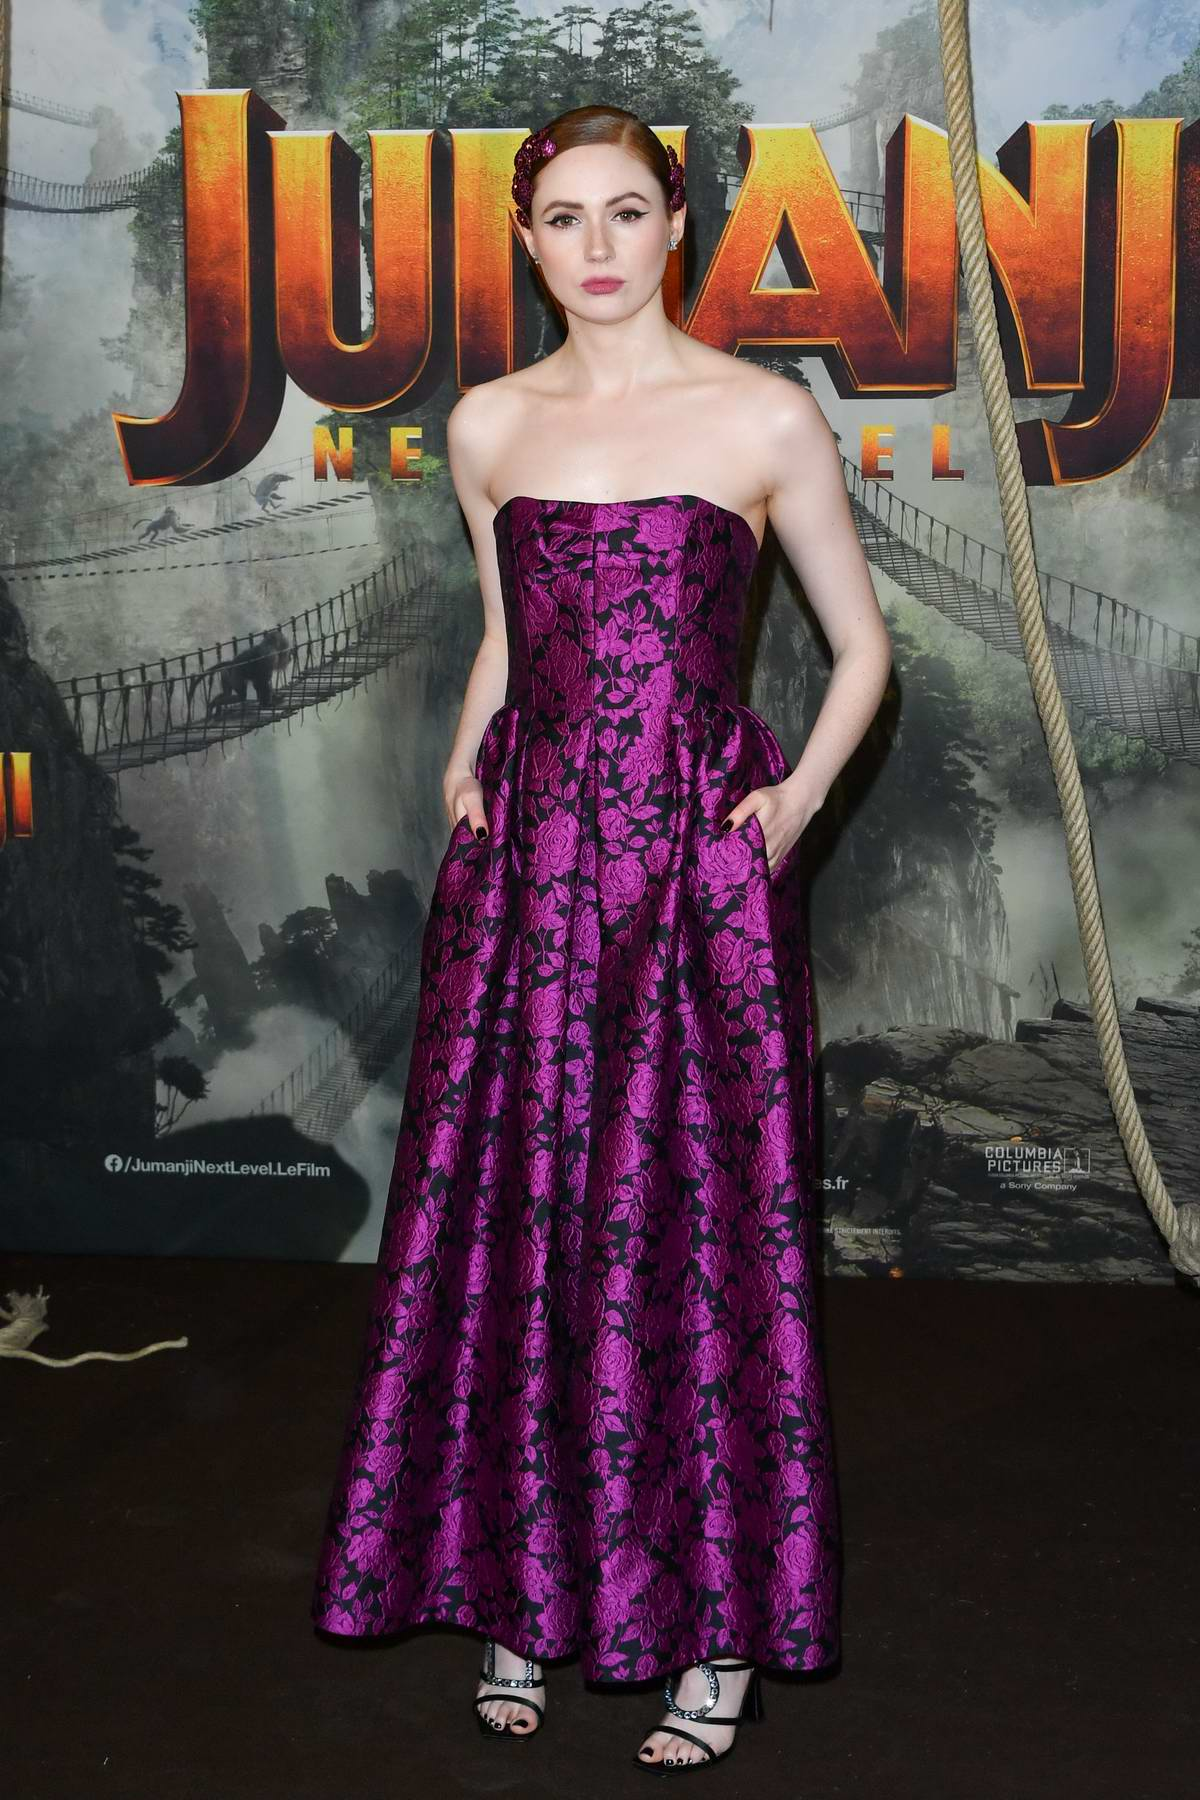 Karen Gillan attends the Premiere of 'Jumanji: Next Level' in Paris, France